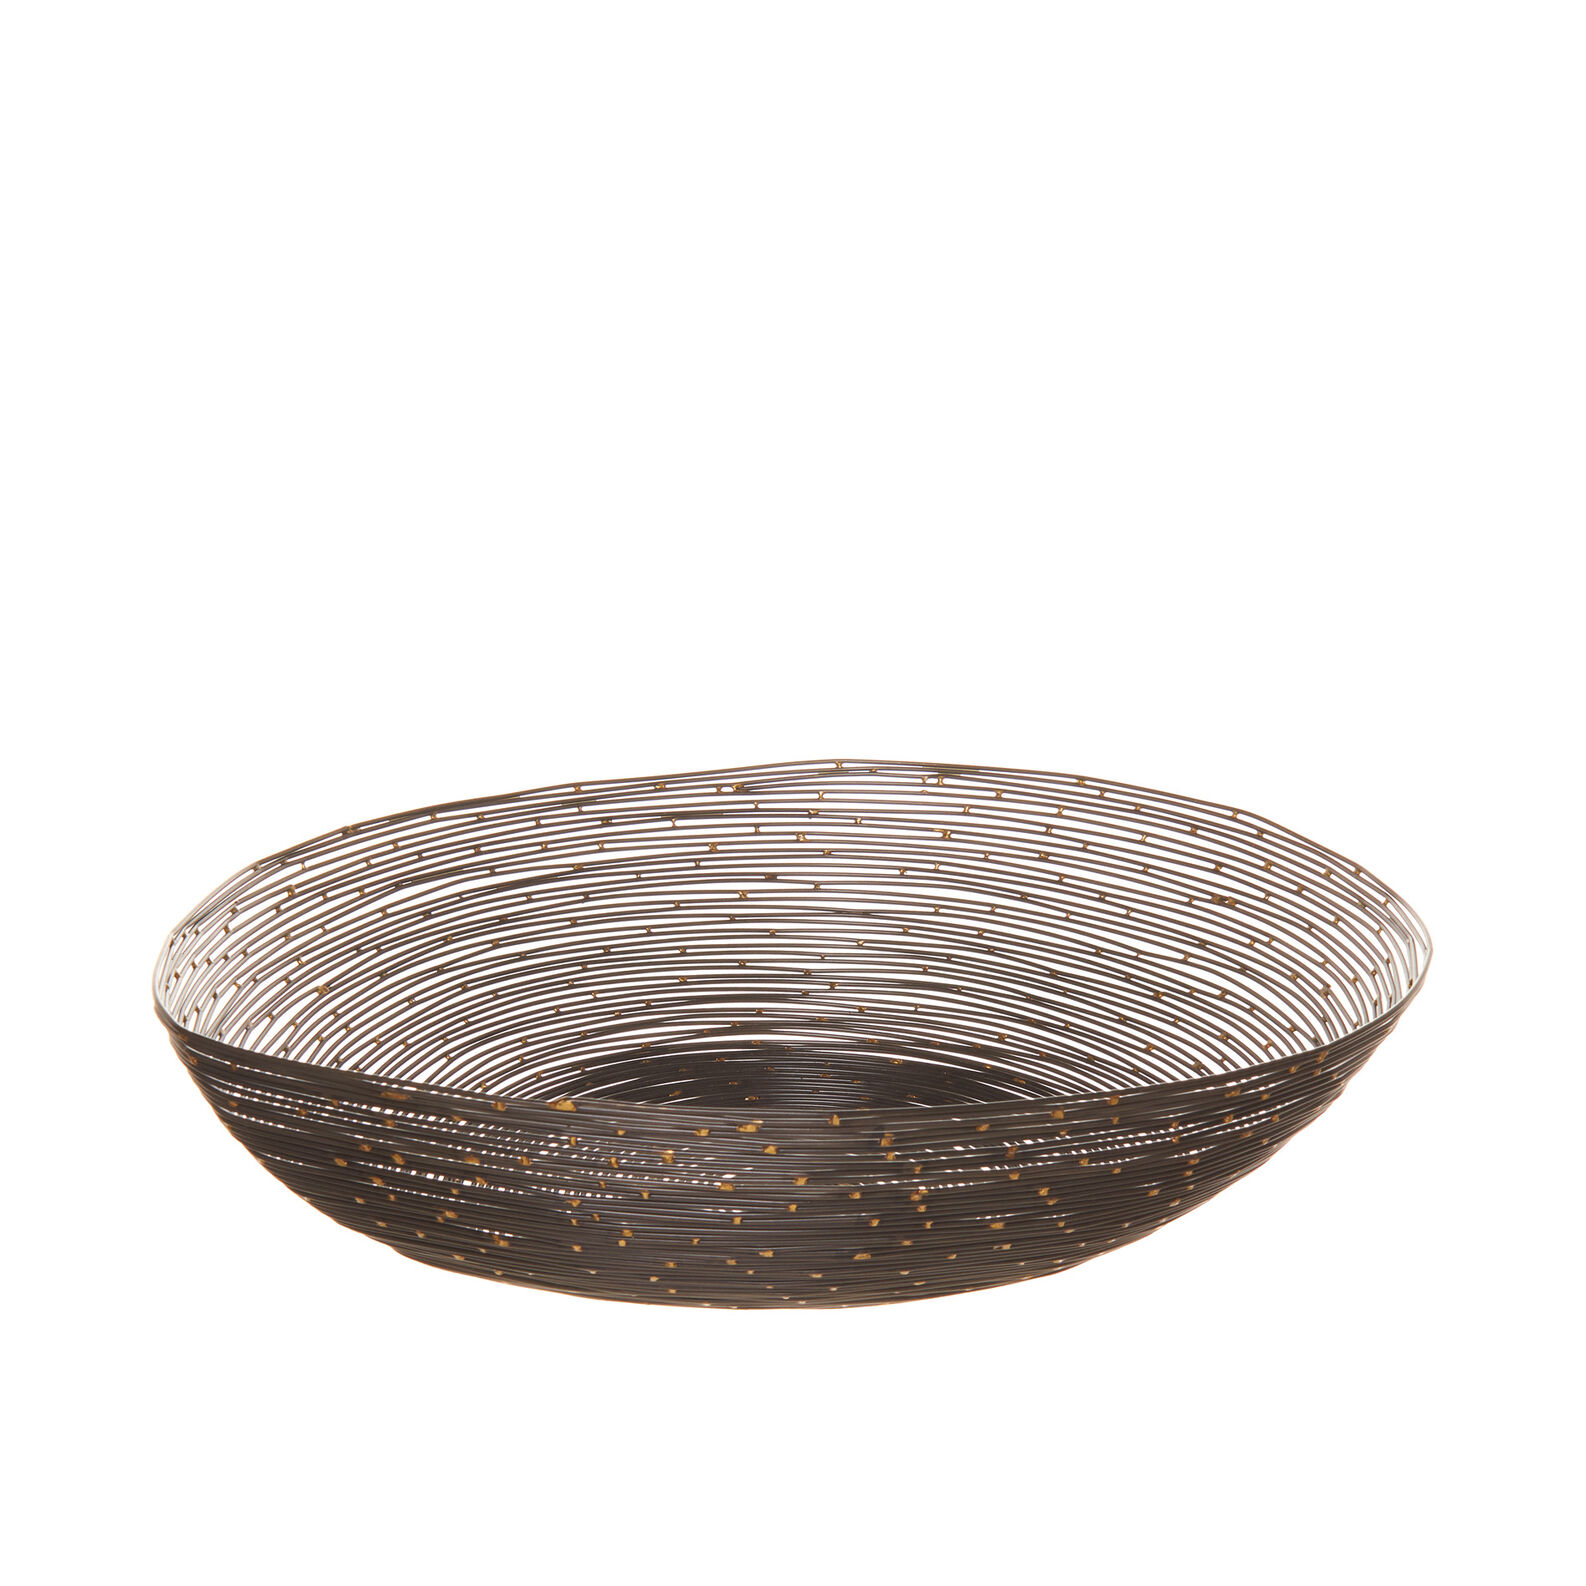 Decorative iron wire bowl